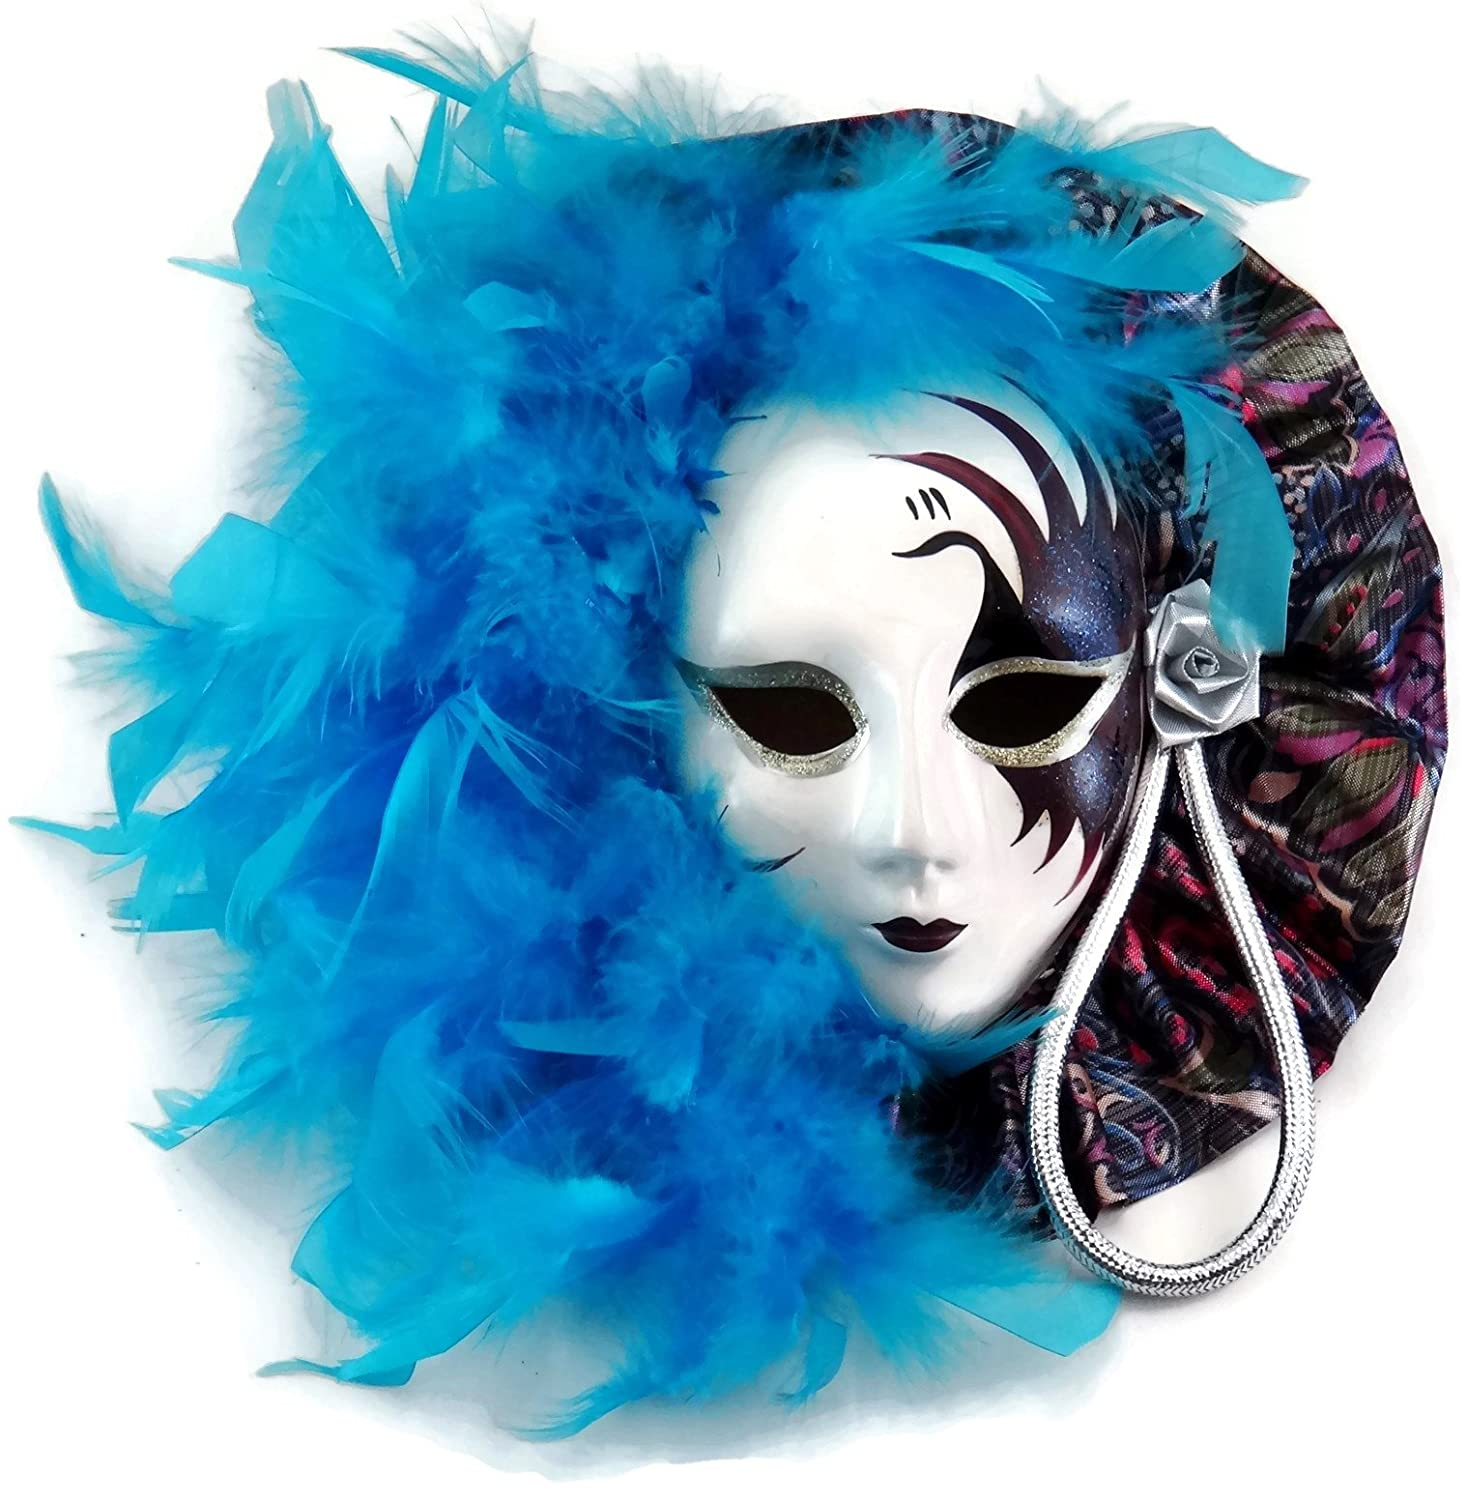 Amazon mardi gras mask wall decor with turquoise feather amazon mardi gras mask wall decor with turquoise feather accents masquerade mask decor home kitchen amipublicfo Images